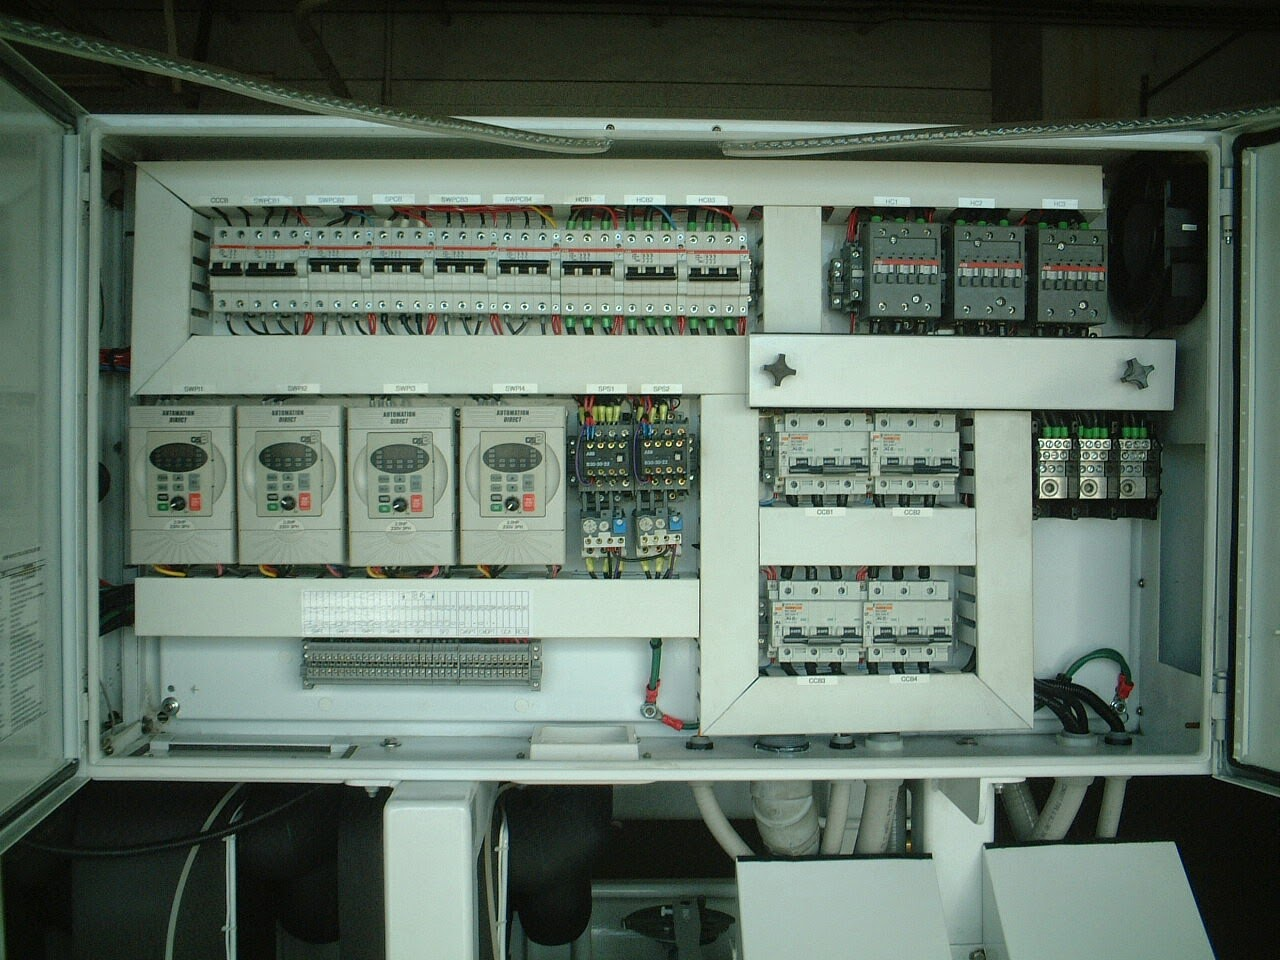 chiller+control+panel electrical wiring diagrams for air conditioning systems part ahu control panel wiring diagram at webbmarketing.co